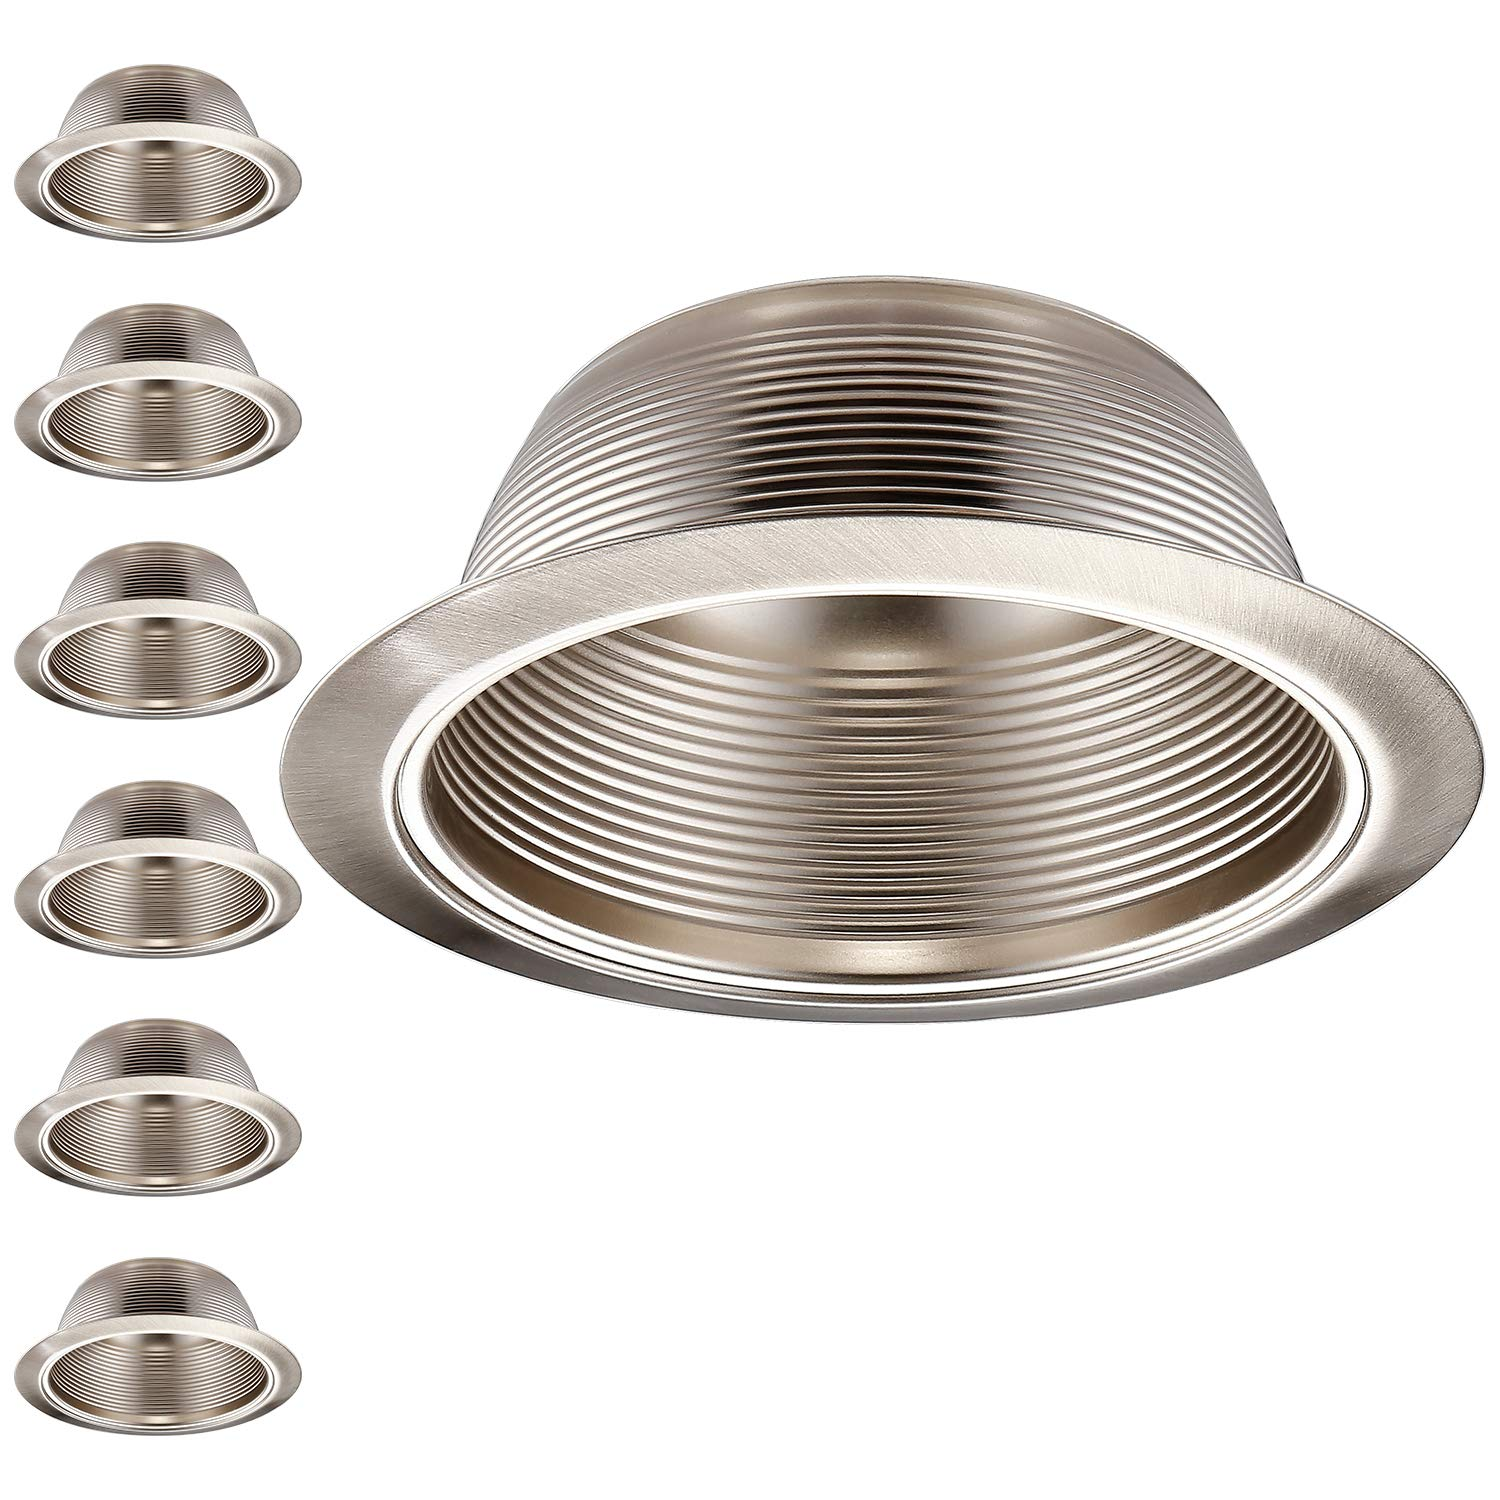 TORCHSTAR 6 Pack 6 Inch Recessed Can Light Trim with Satin Nickel Metal Step Baffle, Detachable Iron Ring Included, Fit Halo and Juno Remodel Recessed Housing